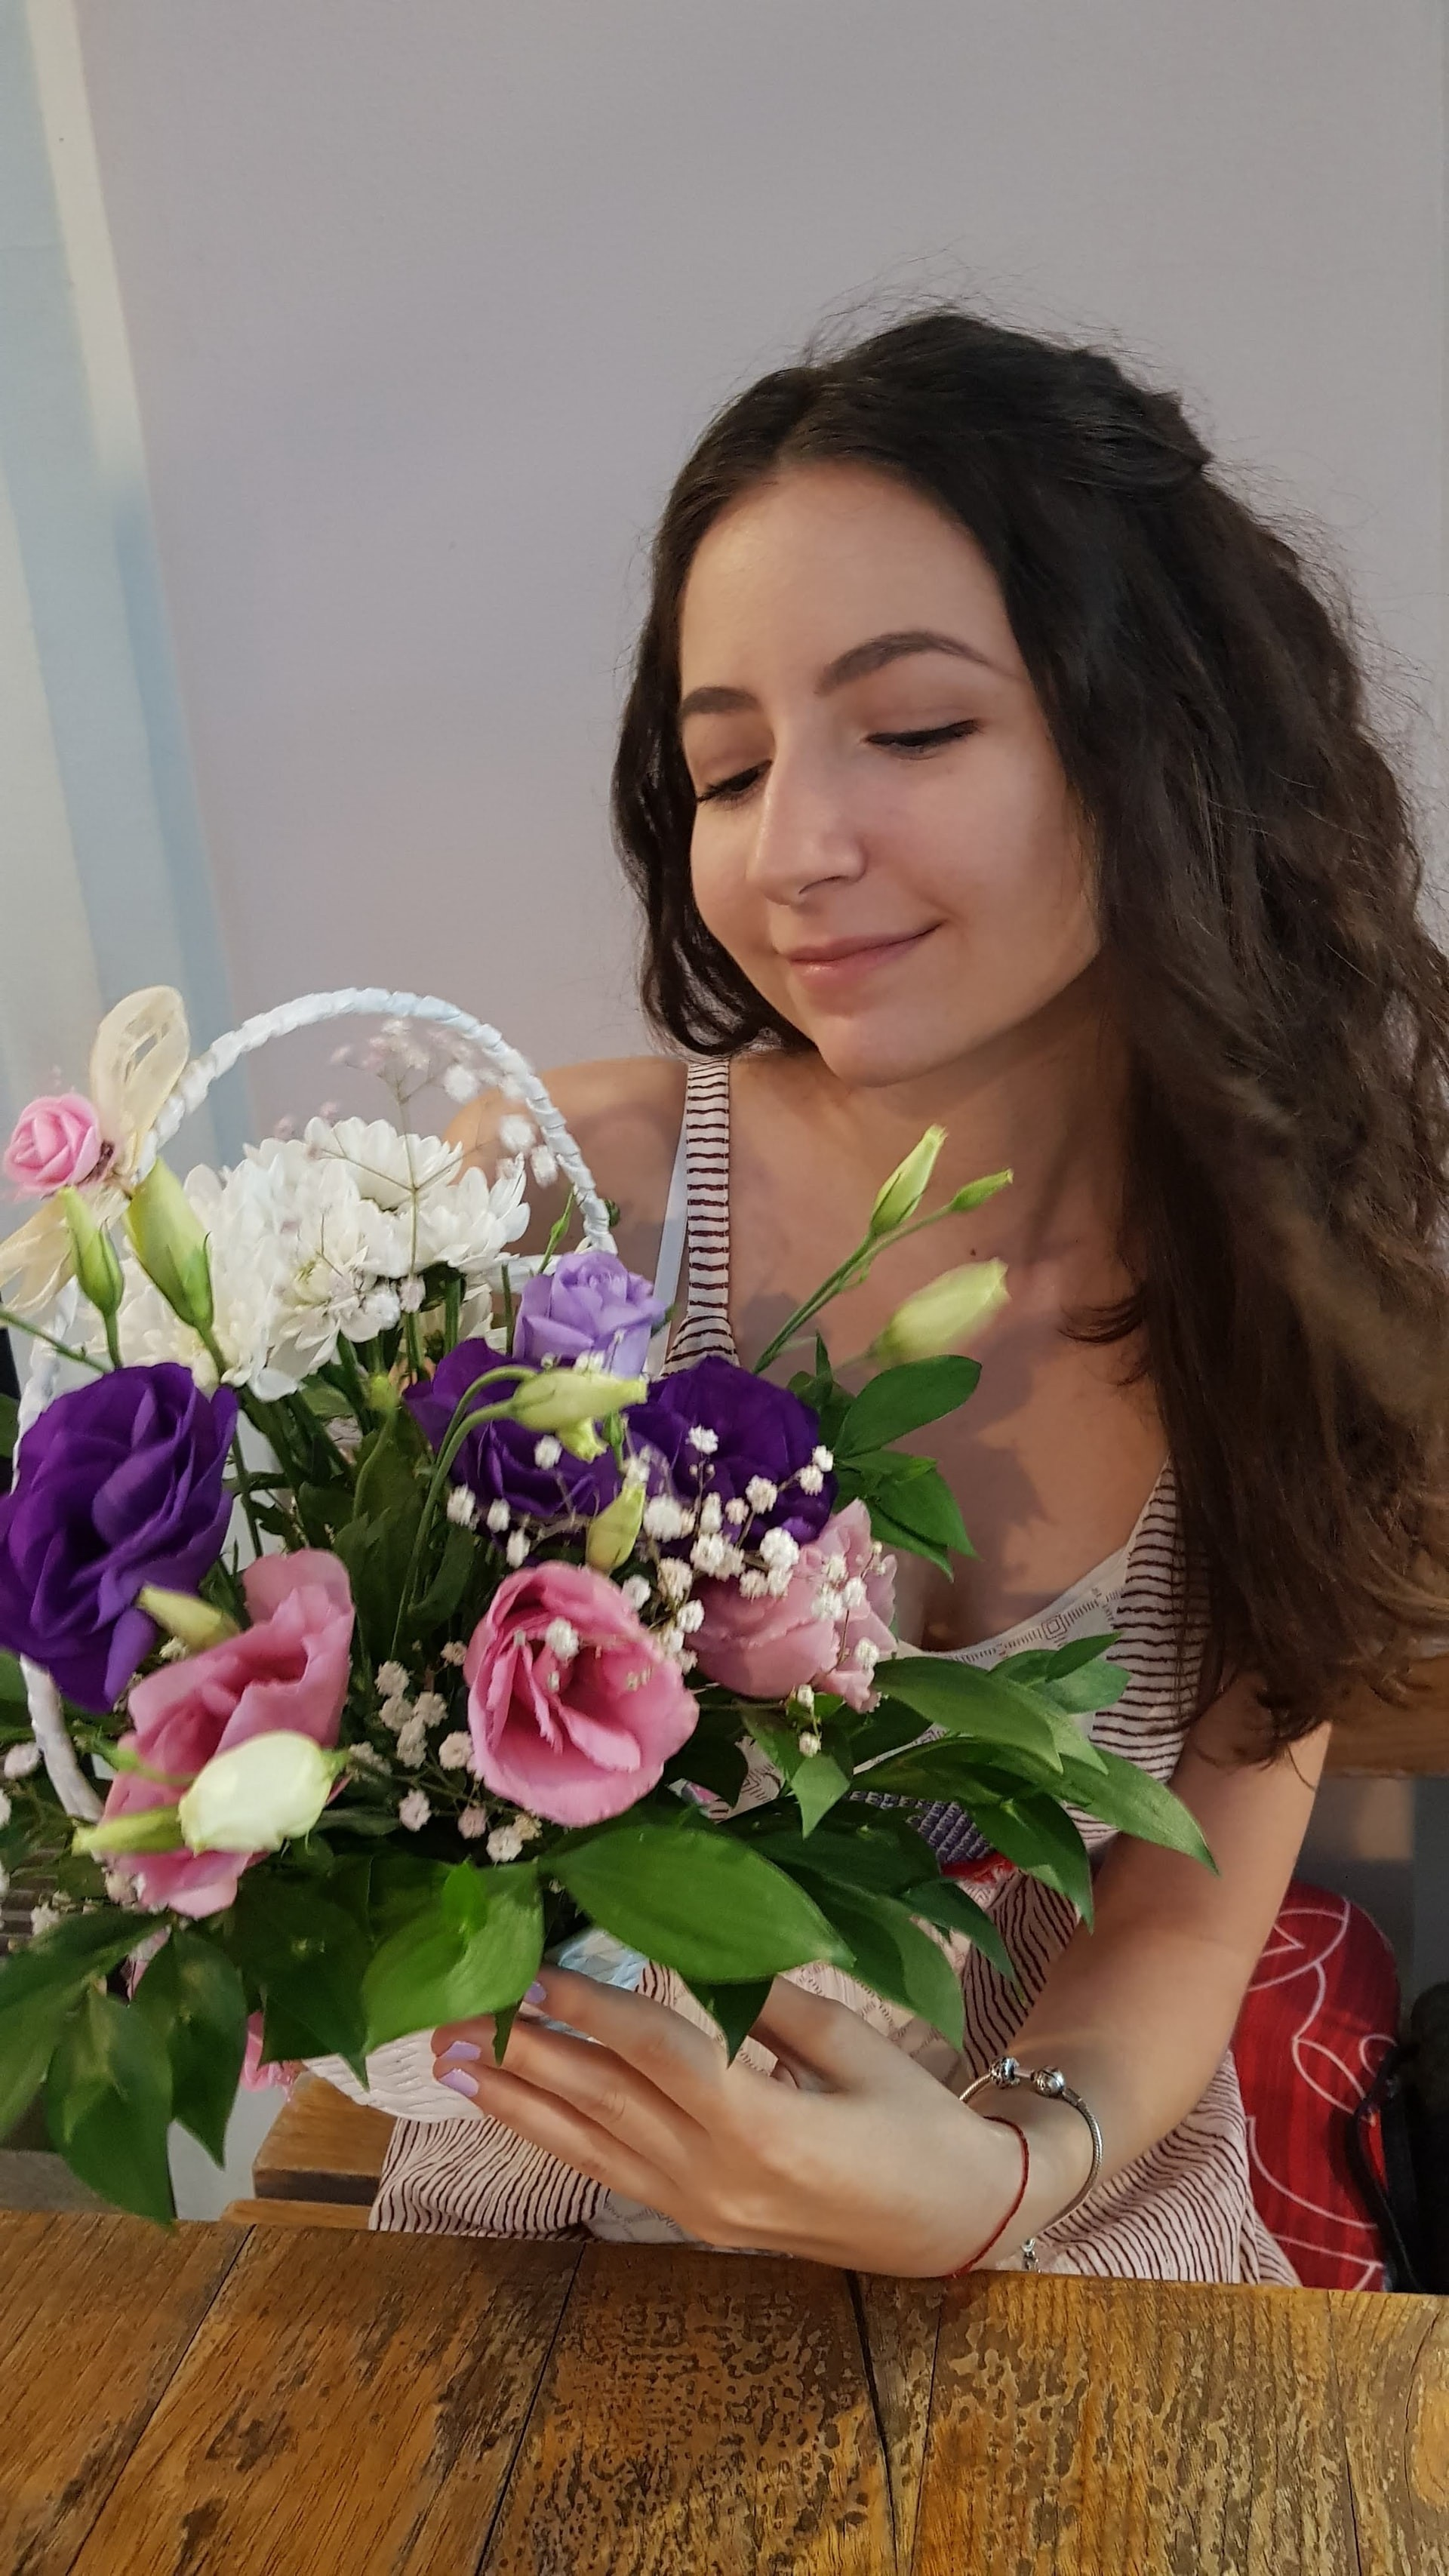 Valentine's Day: The Cost of Flowers on the Environment